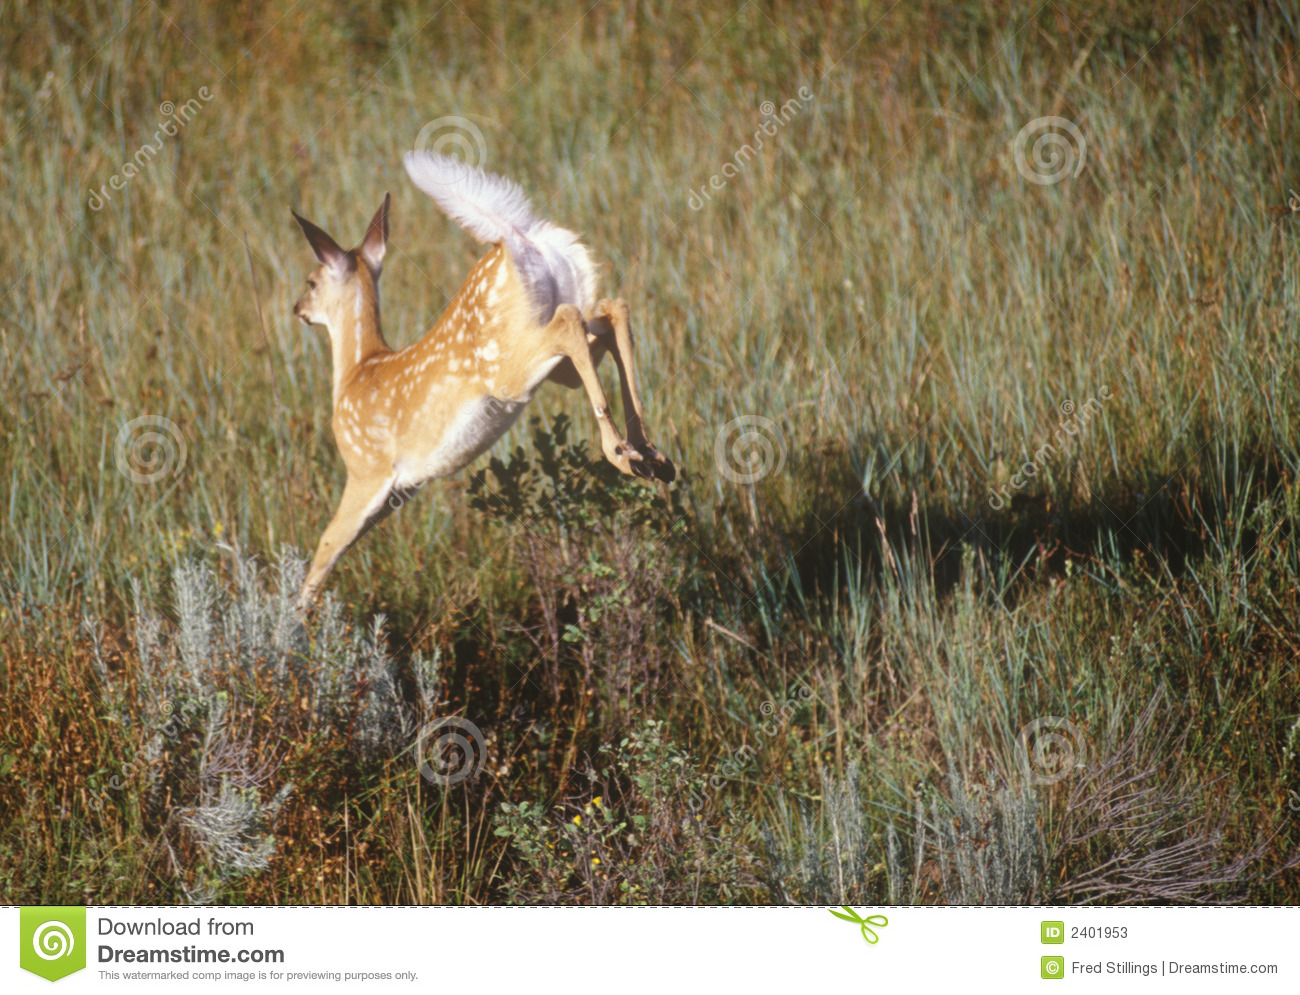 Whitetailed deer (fawn with spots) leaping through tall grass in ...